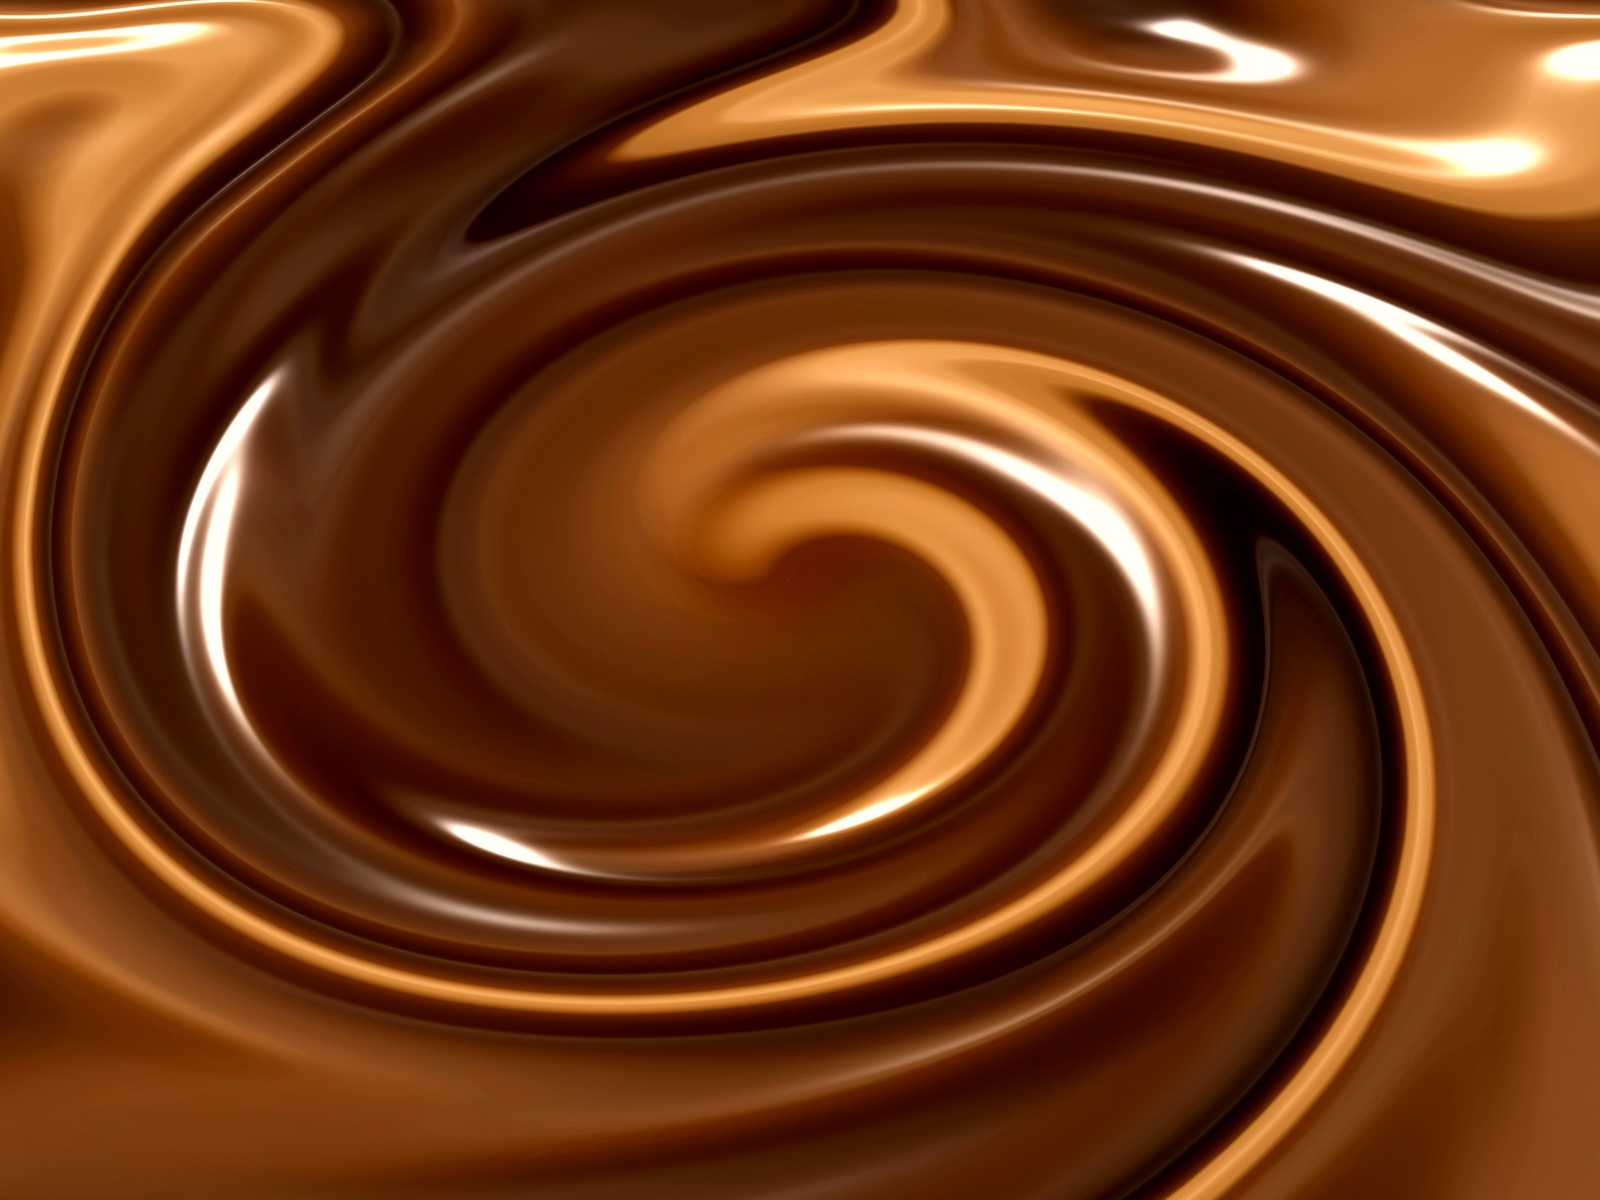 Chocolate Swirl wallpaper